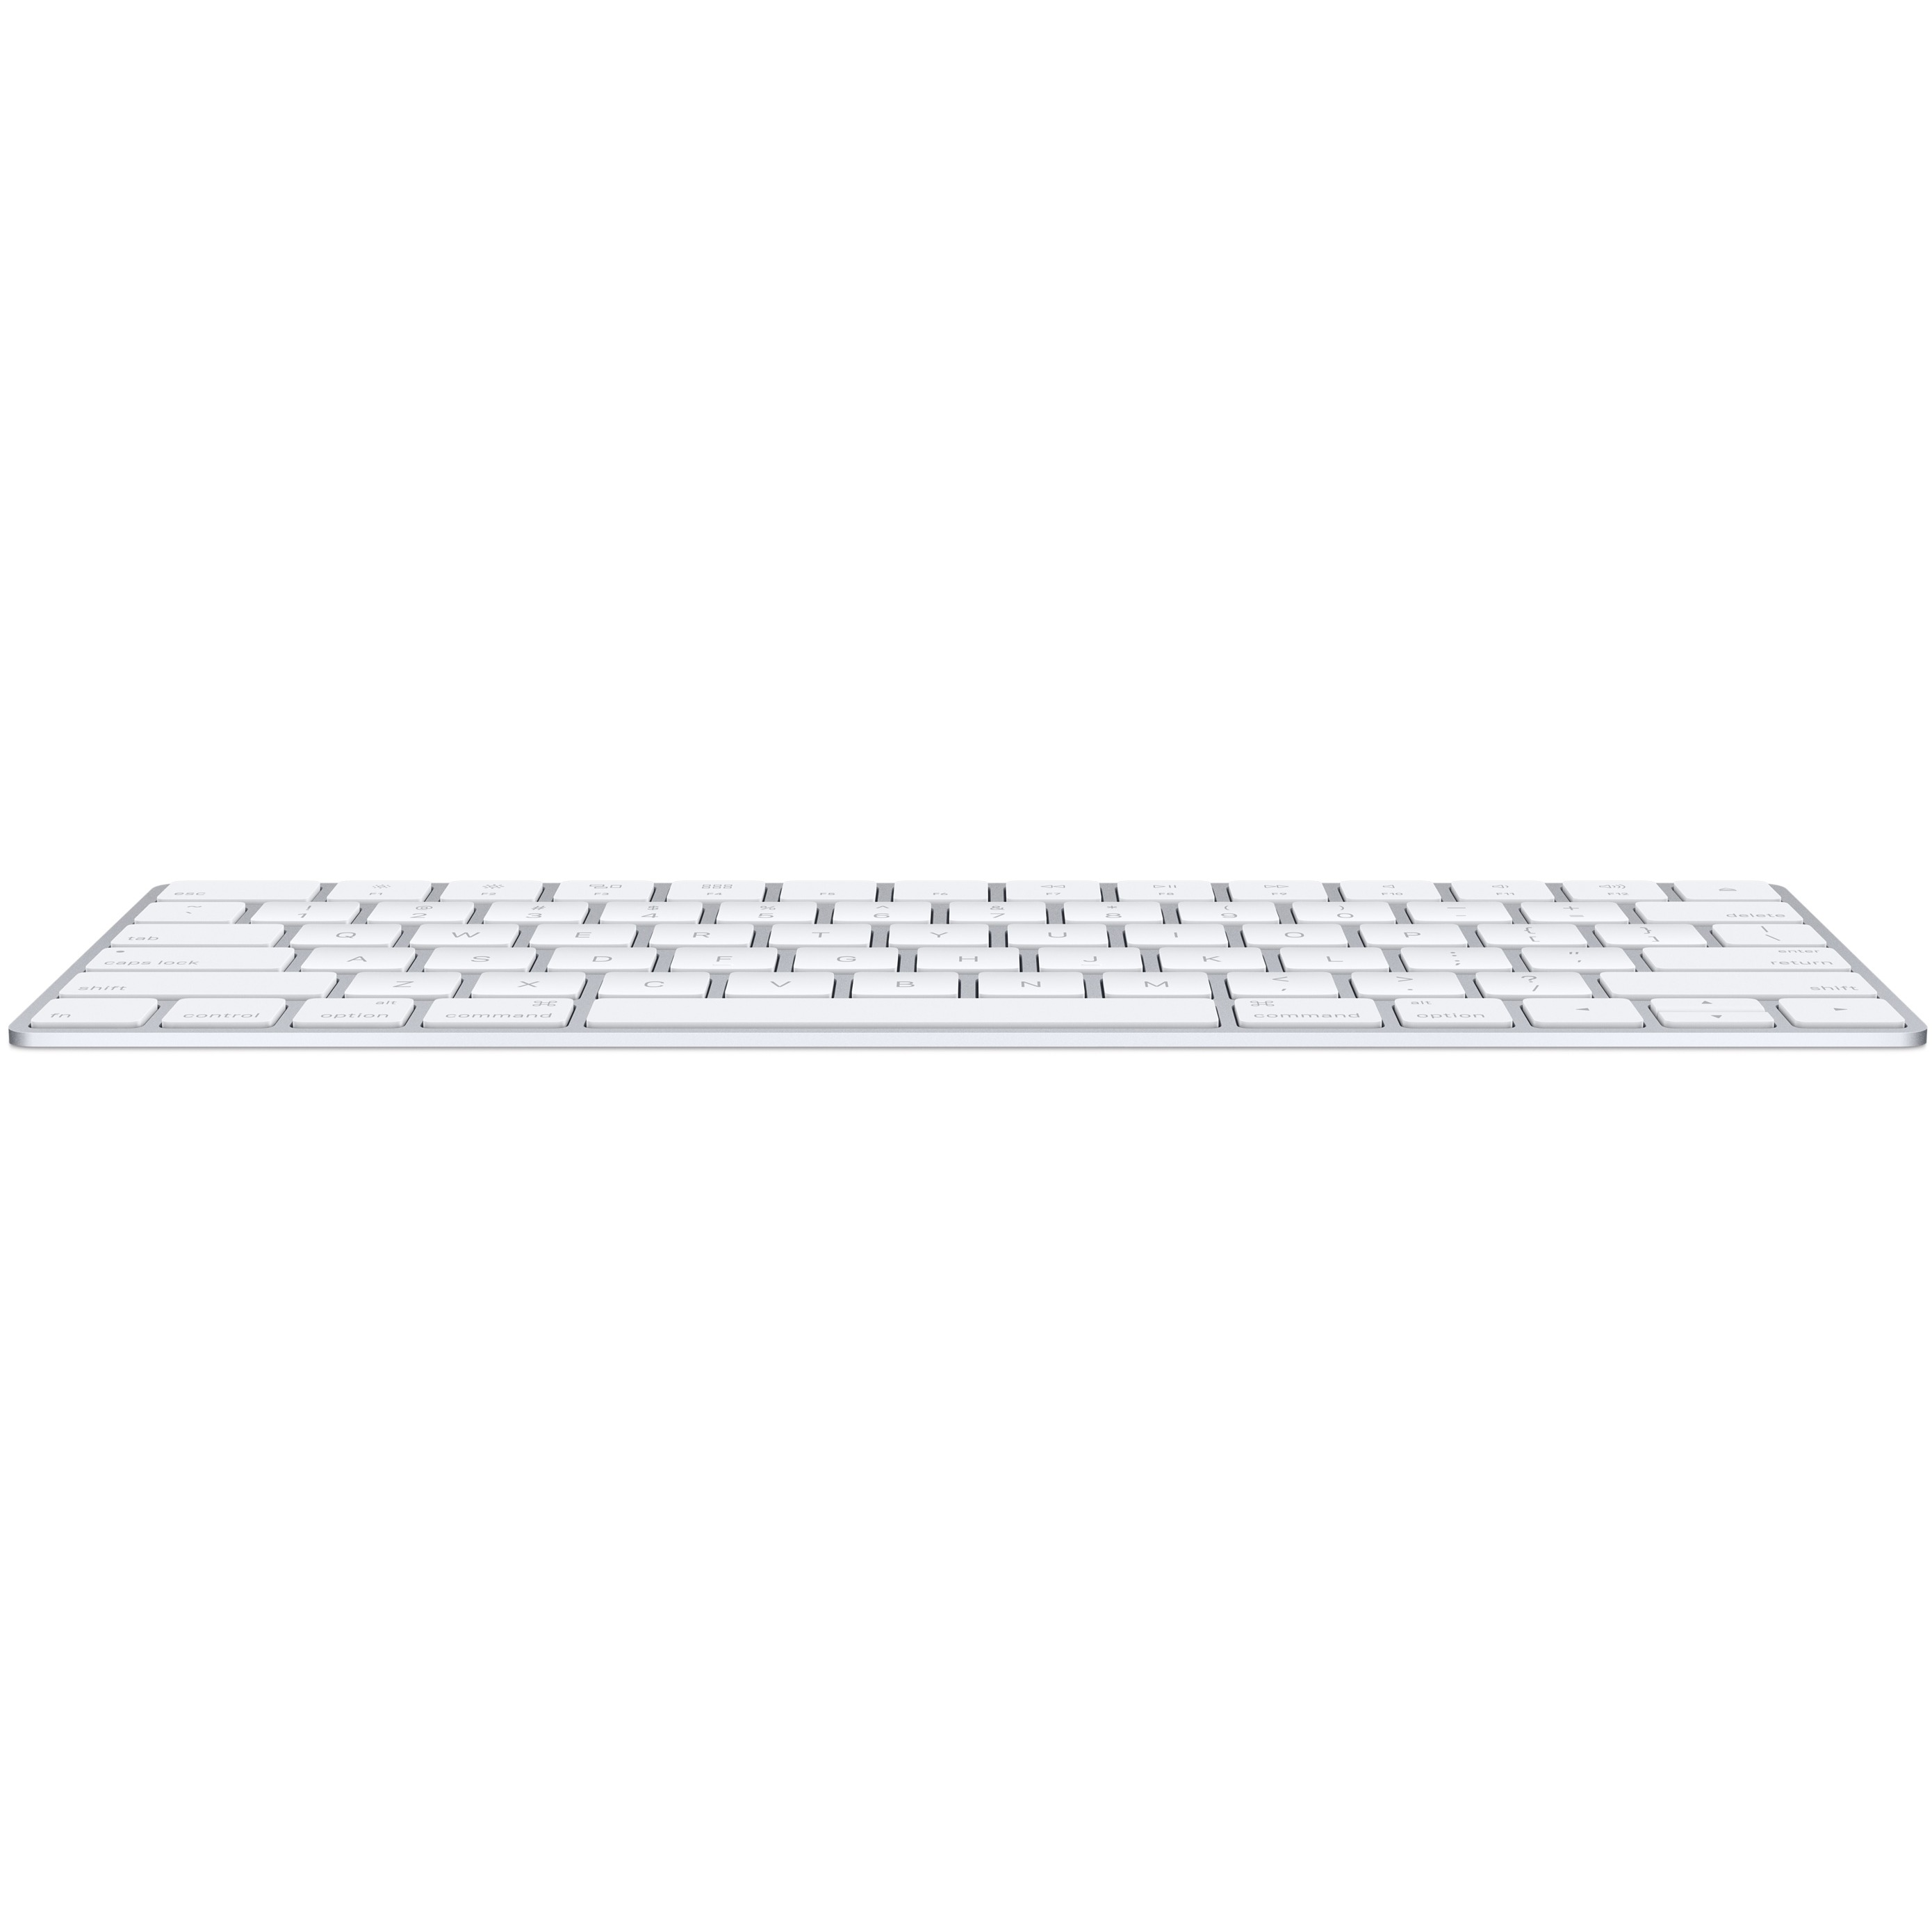 Apple Magic Keyboard - Wired/Wireless Connectivity - Bluetooth - Lightning Interface - Swedish - Compatible with Computer - Scissors 1